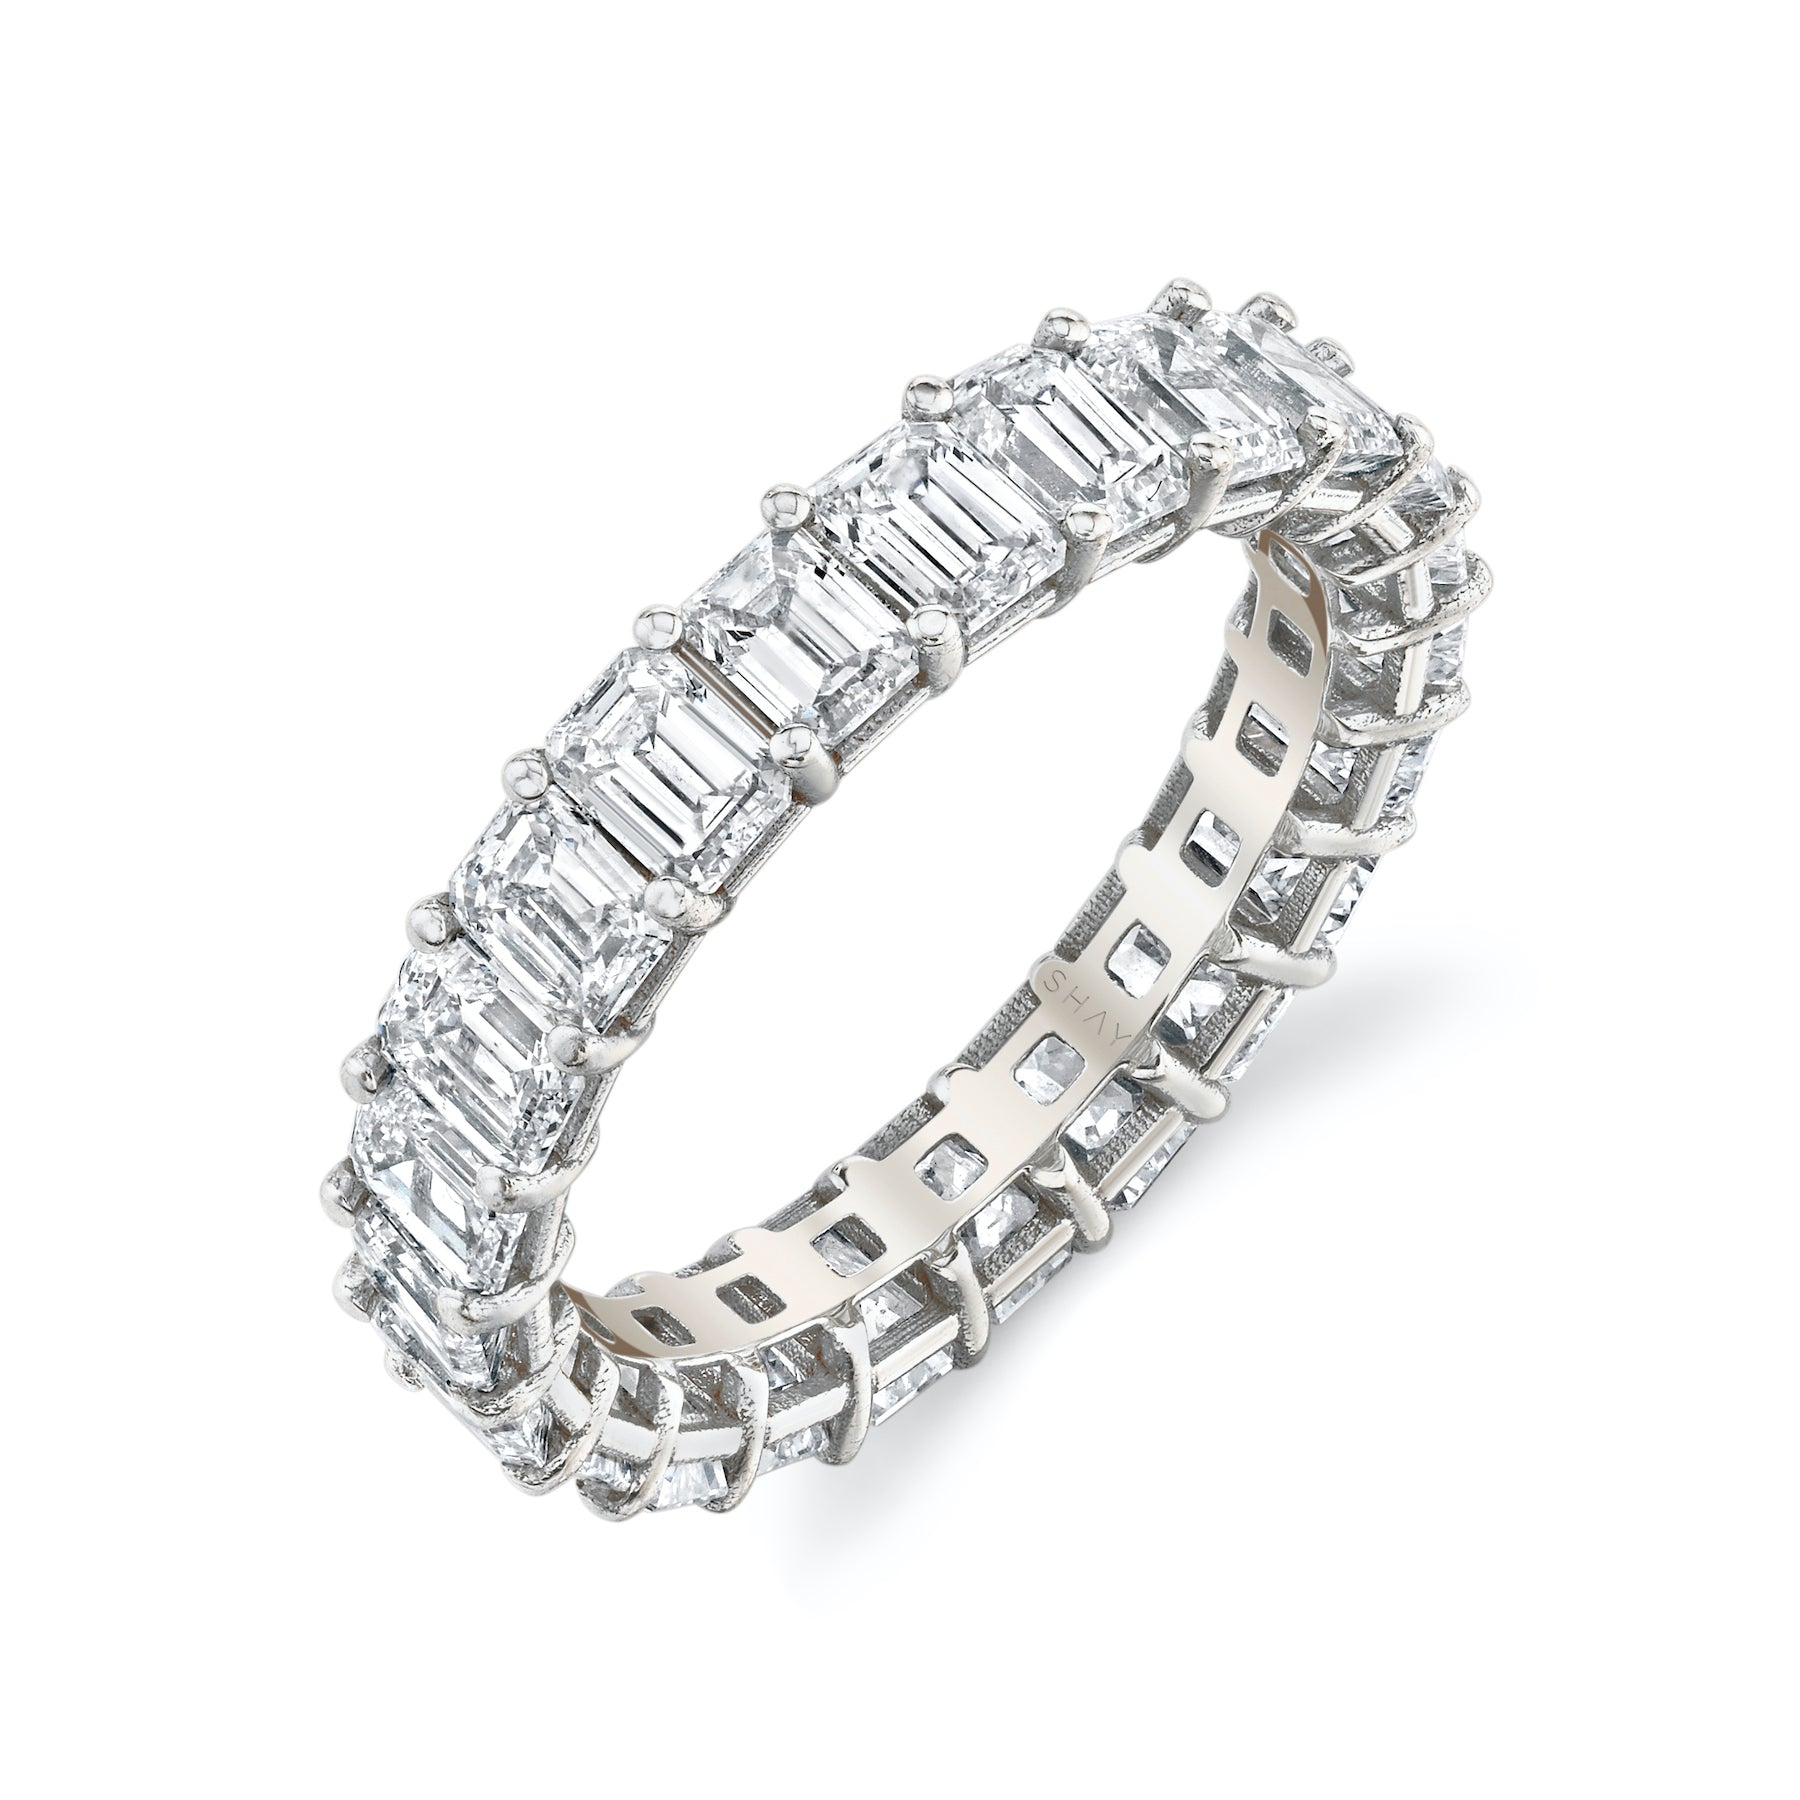 SMALL EMERALD CUT ETERNITY BAND